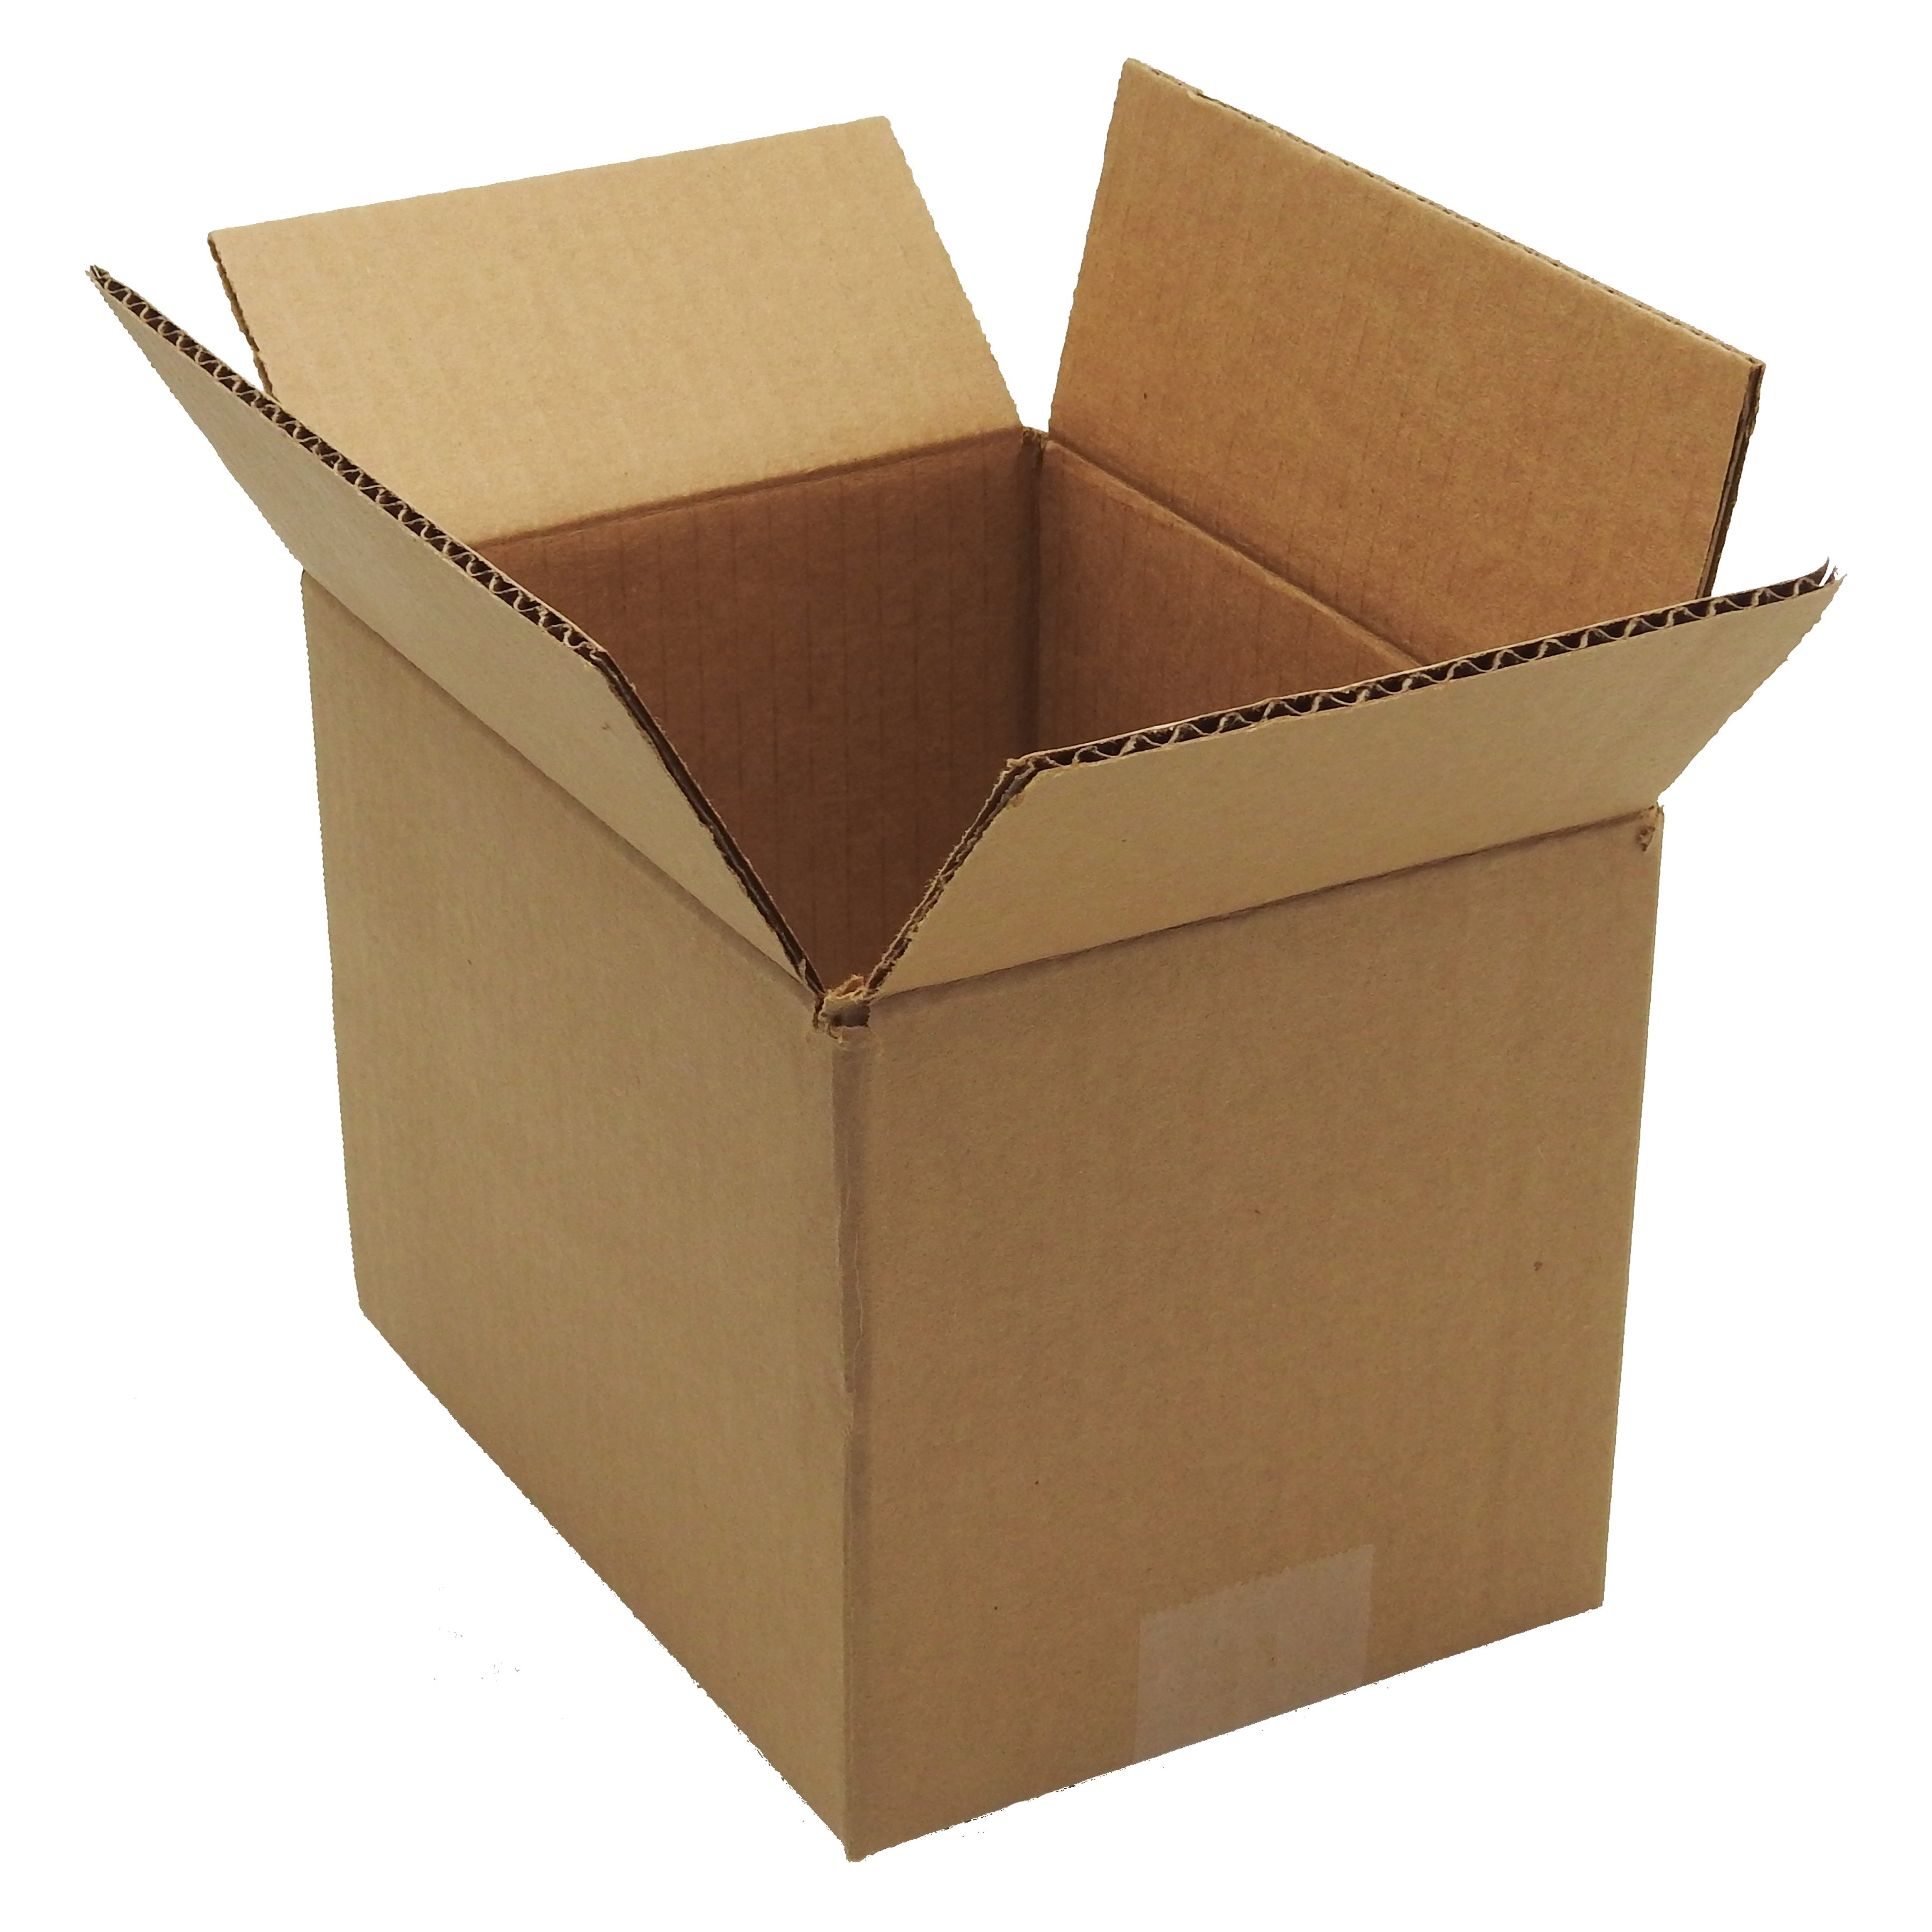 100 6x6x6 Corrugated Cardboard Shipping Mailing Packing Moving Boxes Box Carton